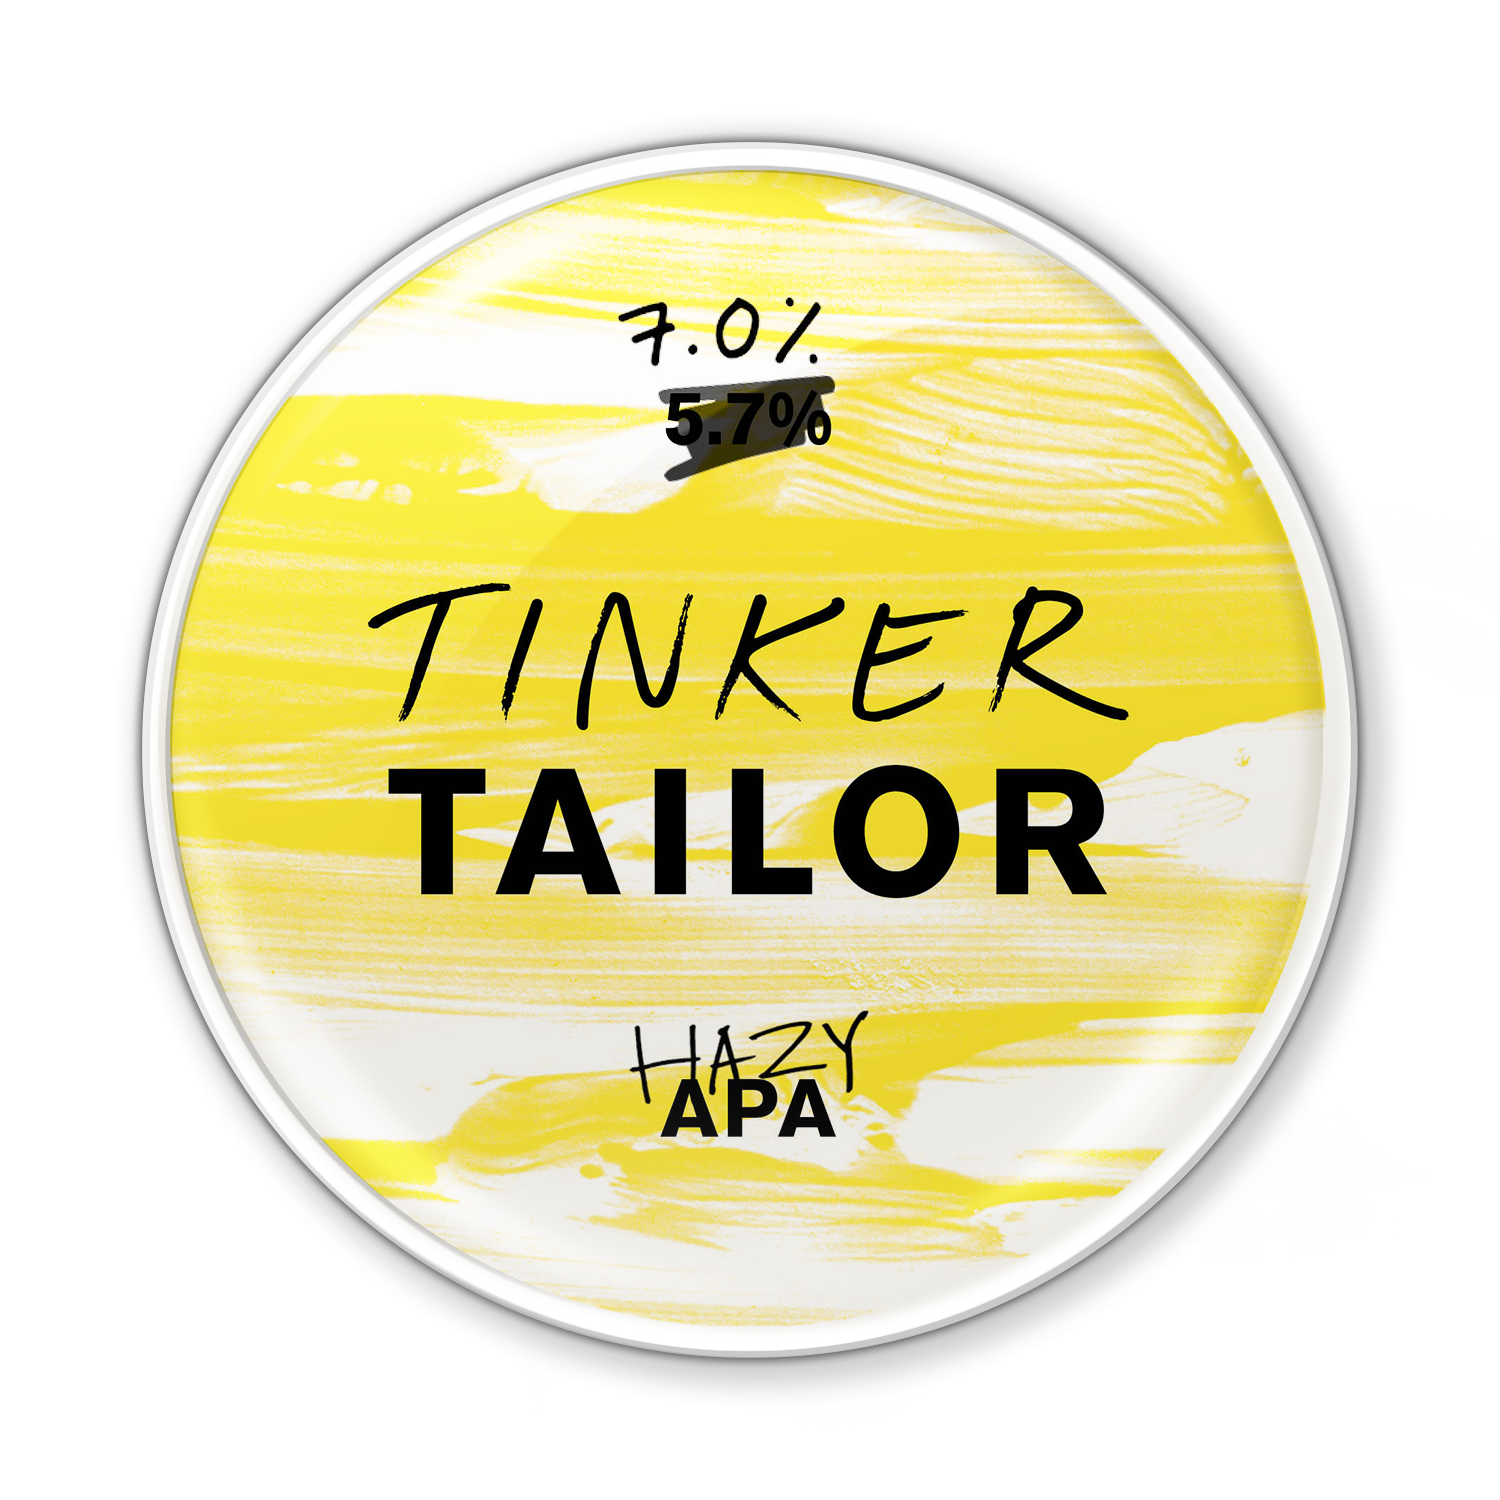 Hazy APA - Tinker's gone a bit crazy with this one. Our APA's been amped up with wheat, stone fruit flavours, and buckets of hops. An opaque and opulent offering.Try it with a spicy Thai curry to get your tastebuds really going.7.0%